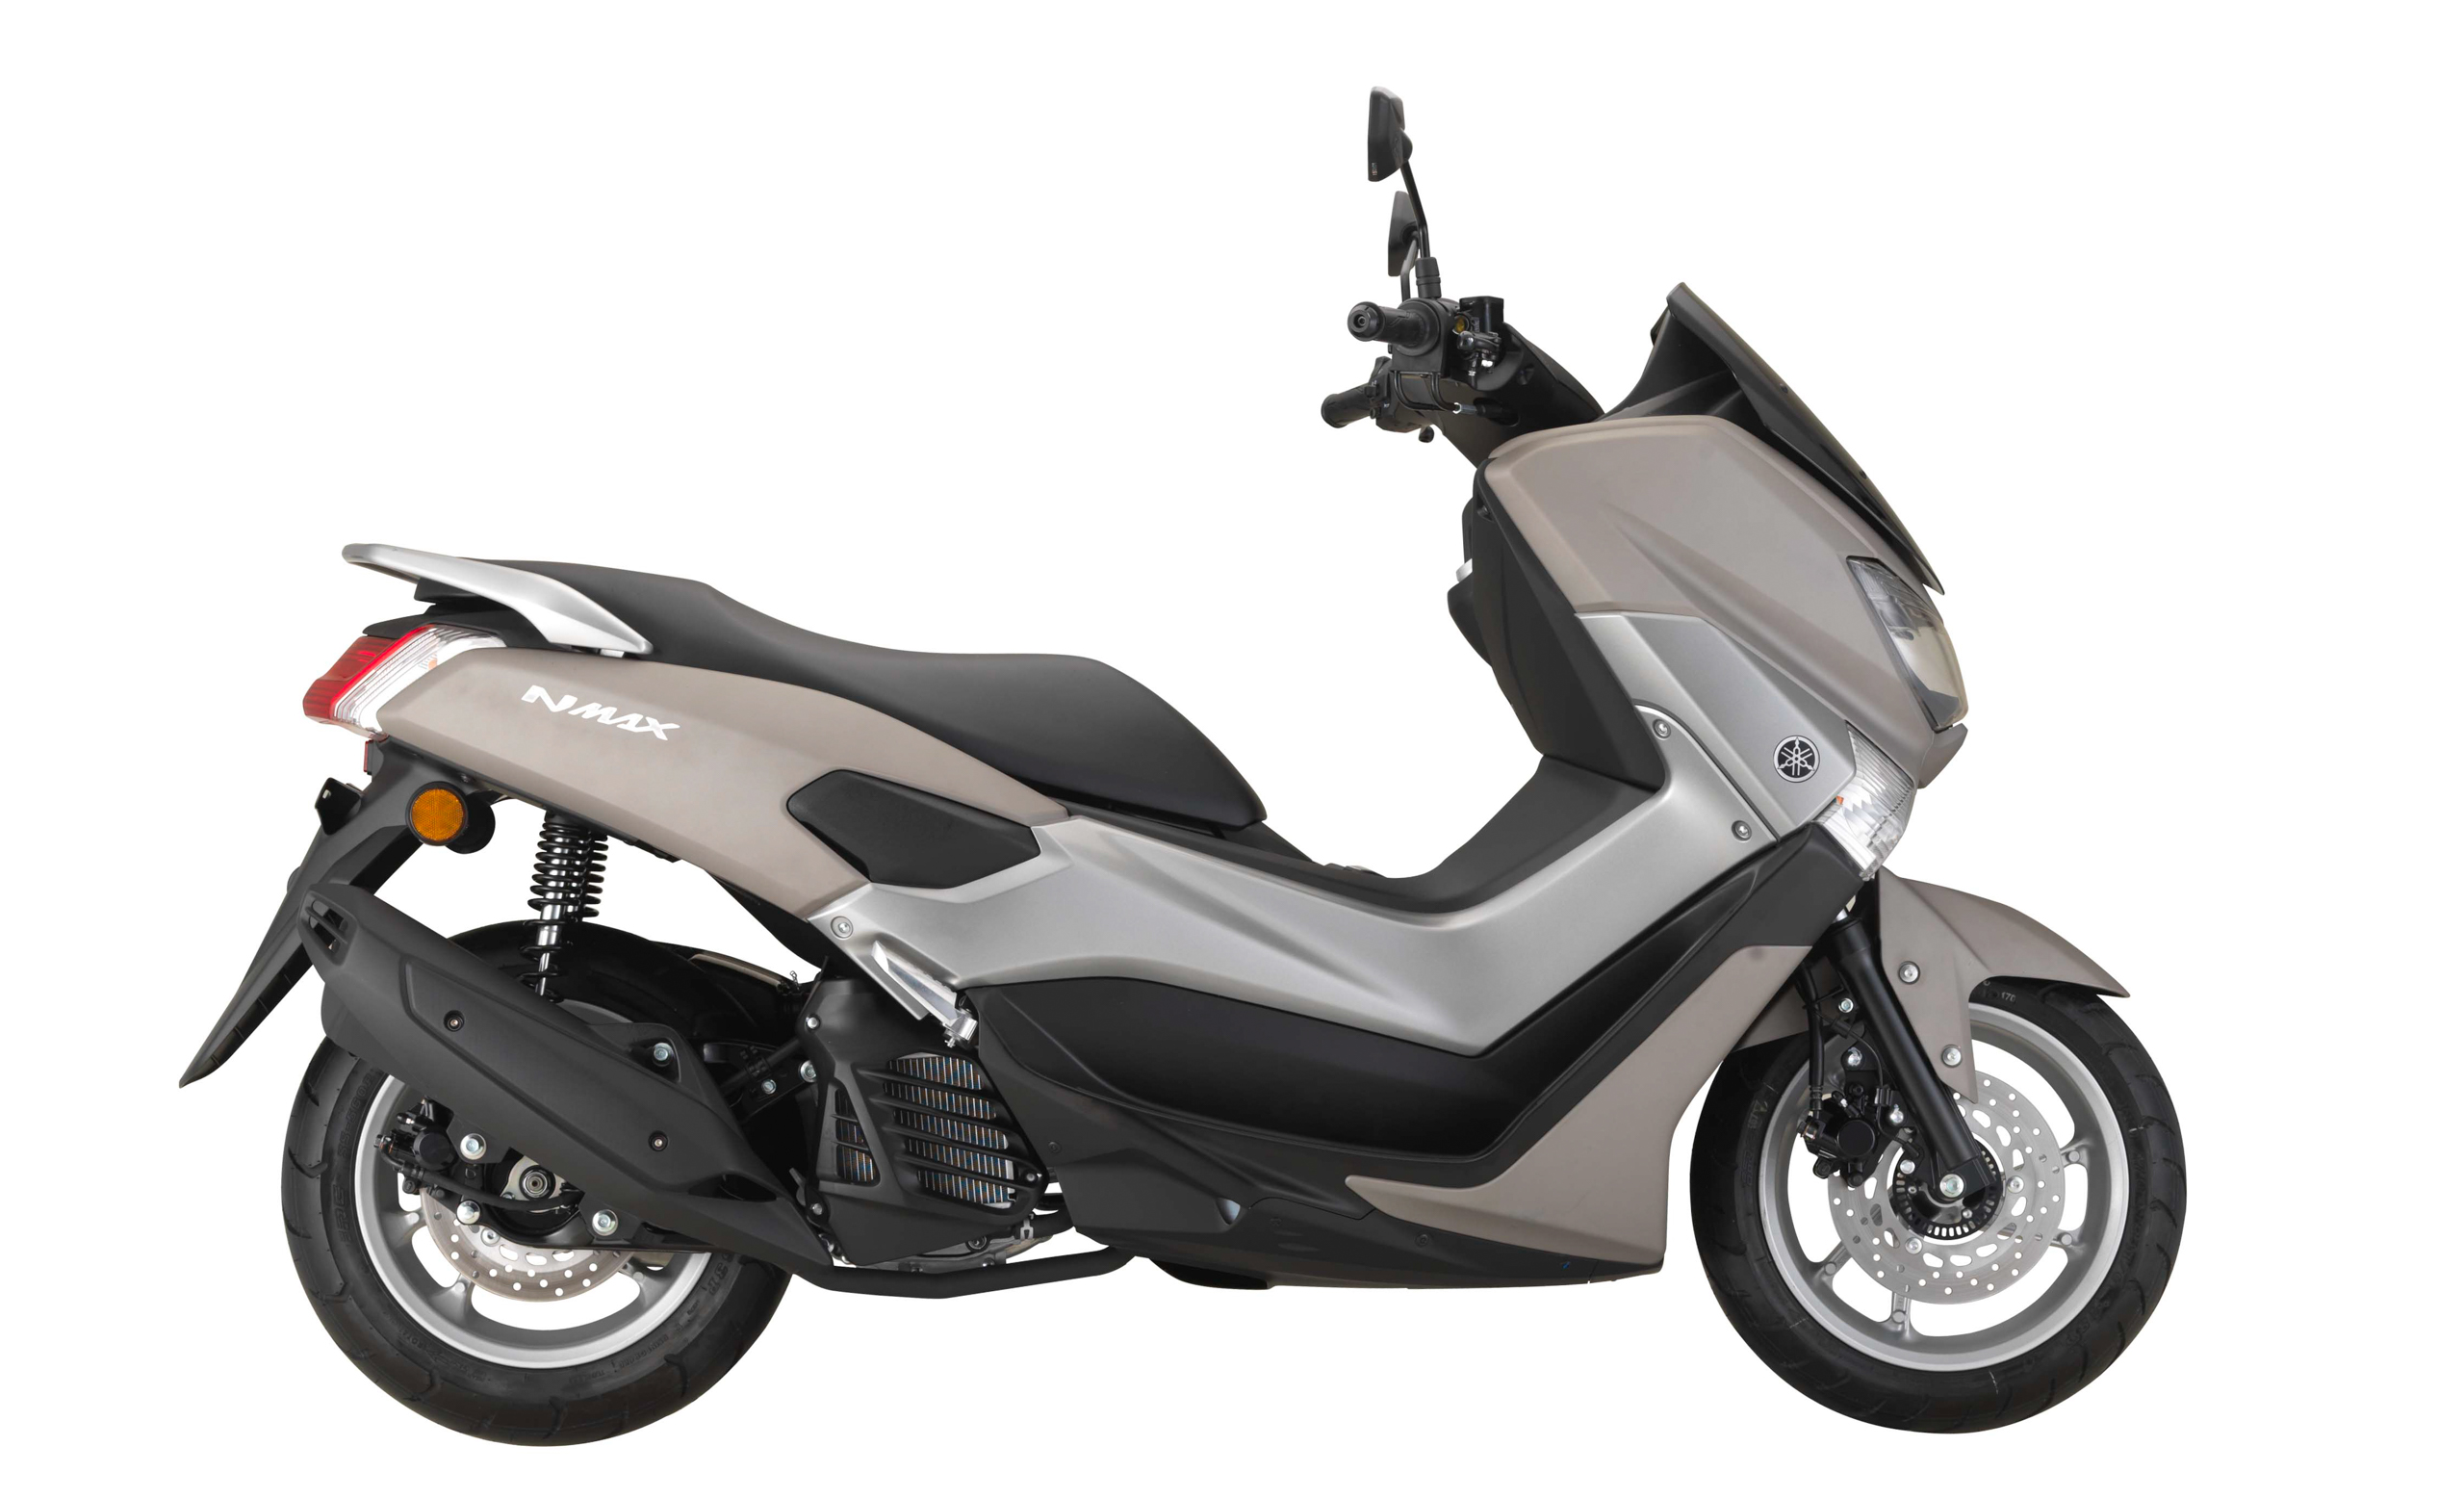 2016 Yamaha Nmax Scooter Launched More Details Image 431980